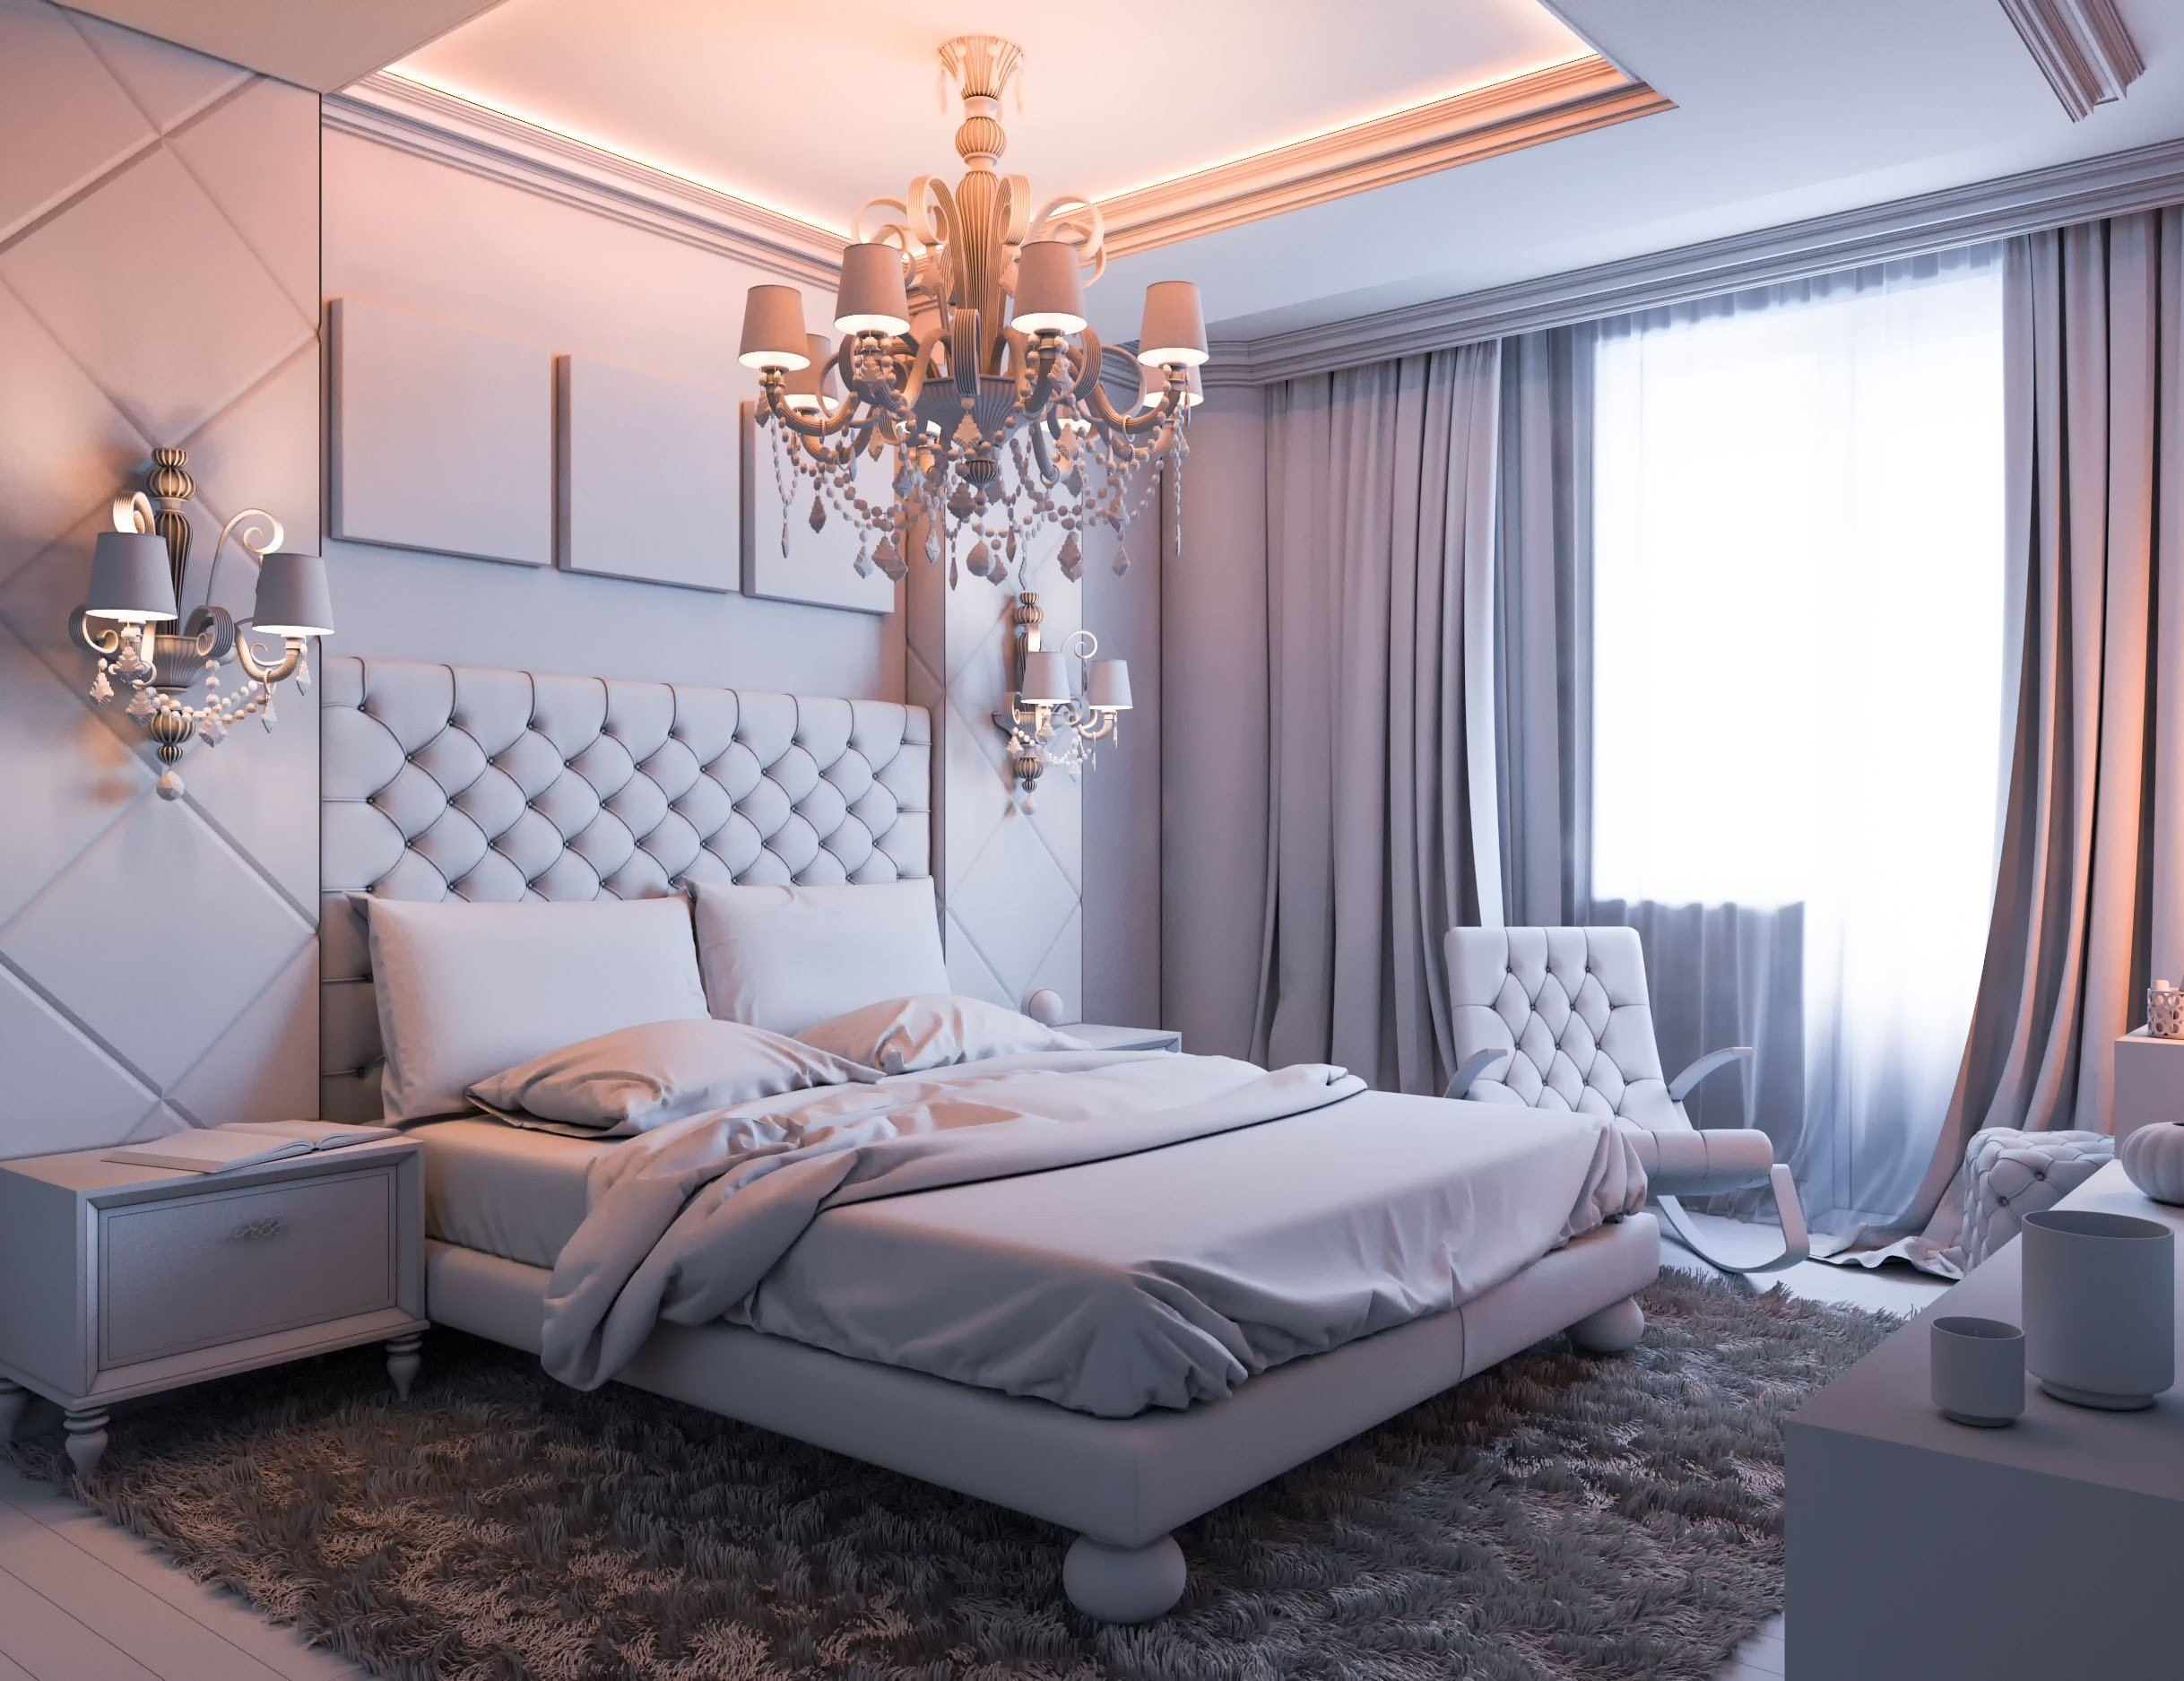 Best 10 Romantic Bedroom Ideas For Couples In Love Archlux Net With Pictures